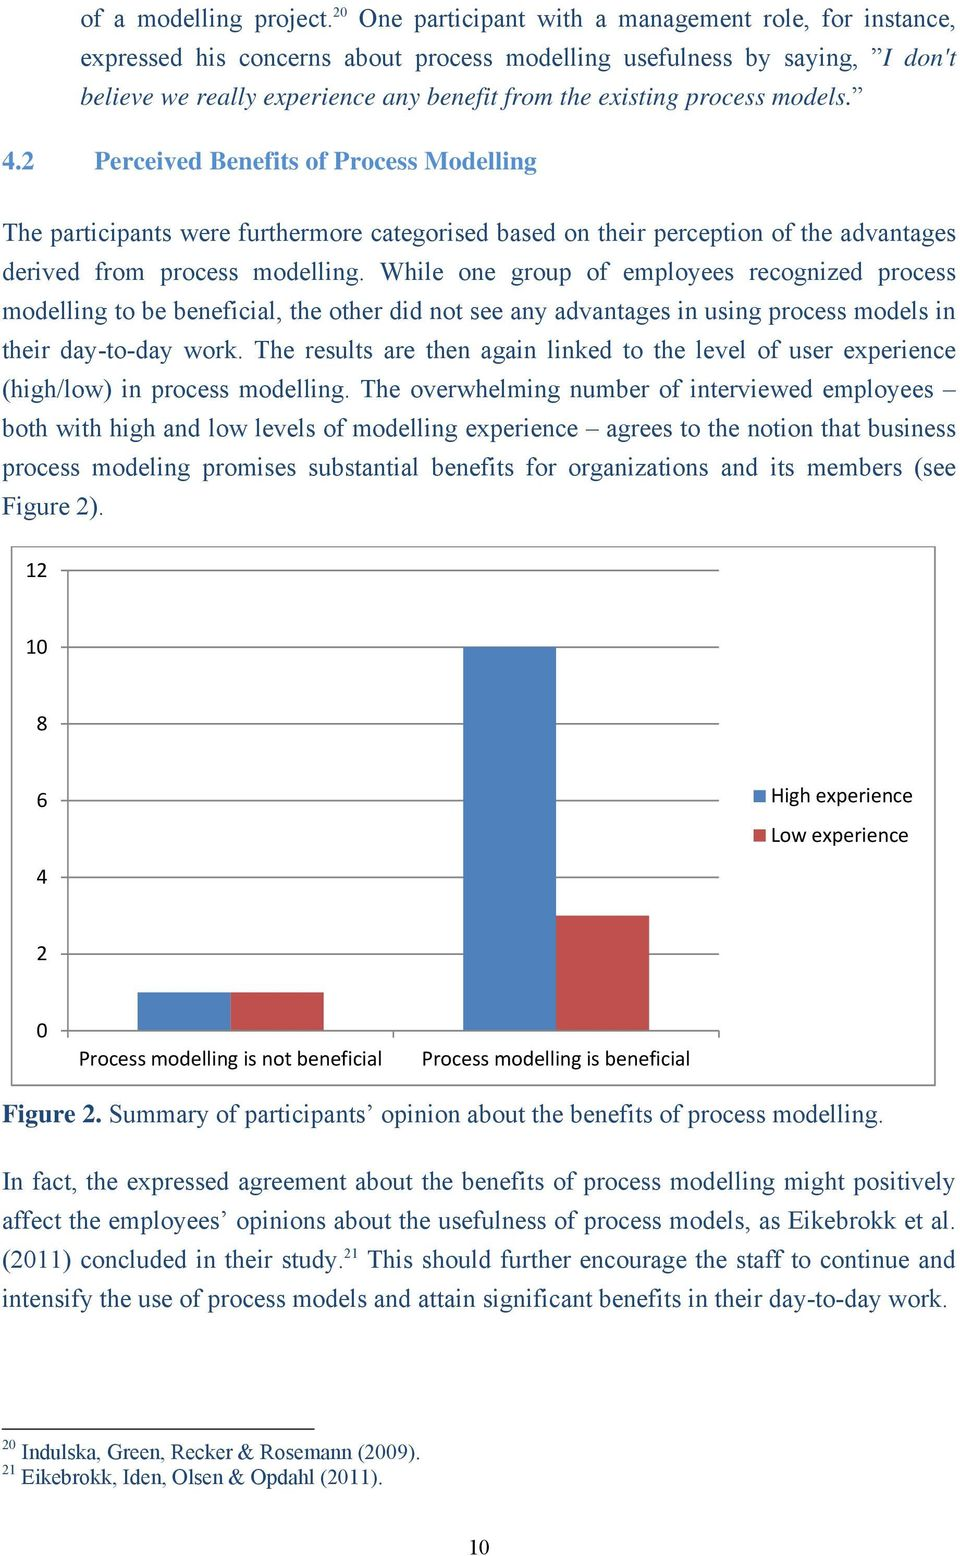 process models. 4.2 Perceived Benefits of Process Modelling The participants were furthermore categorised based on their perception of the advantages derived from process modelling.